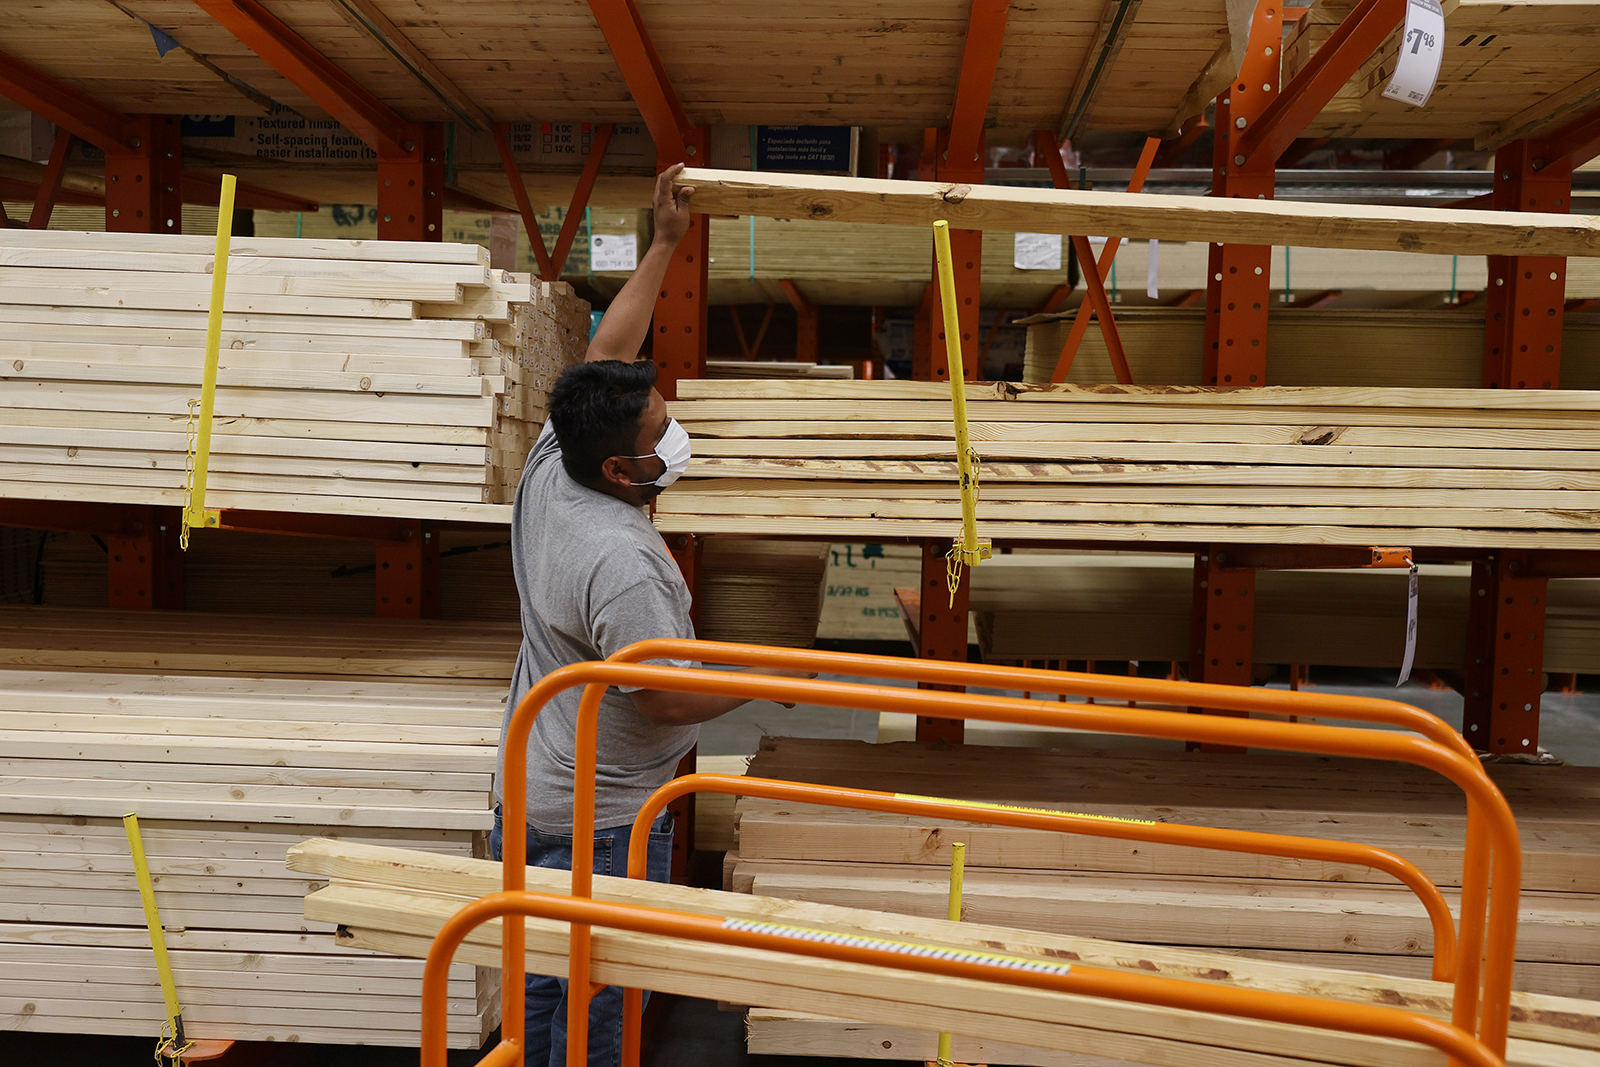 Enrique Matamoros shops for lumber at a Home Depot store on May 27, in Doral, Florida.